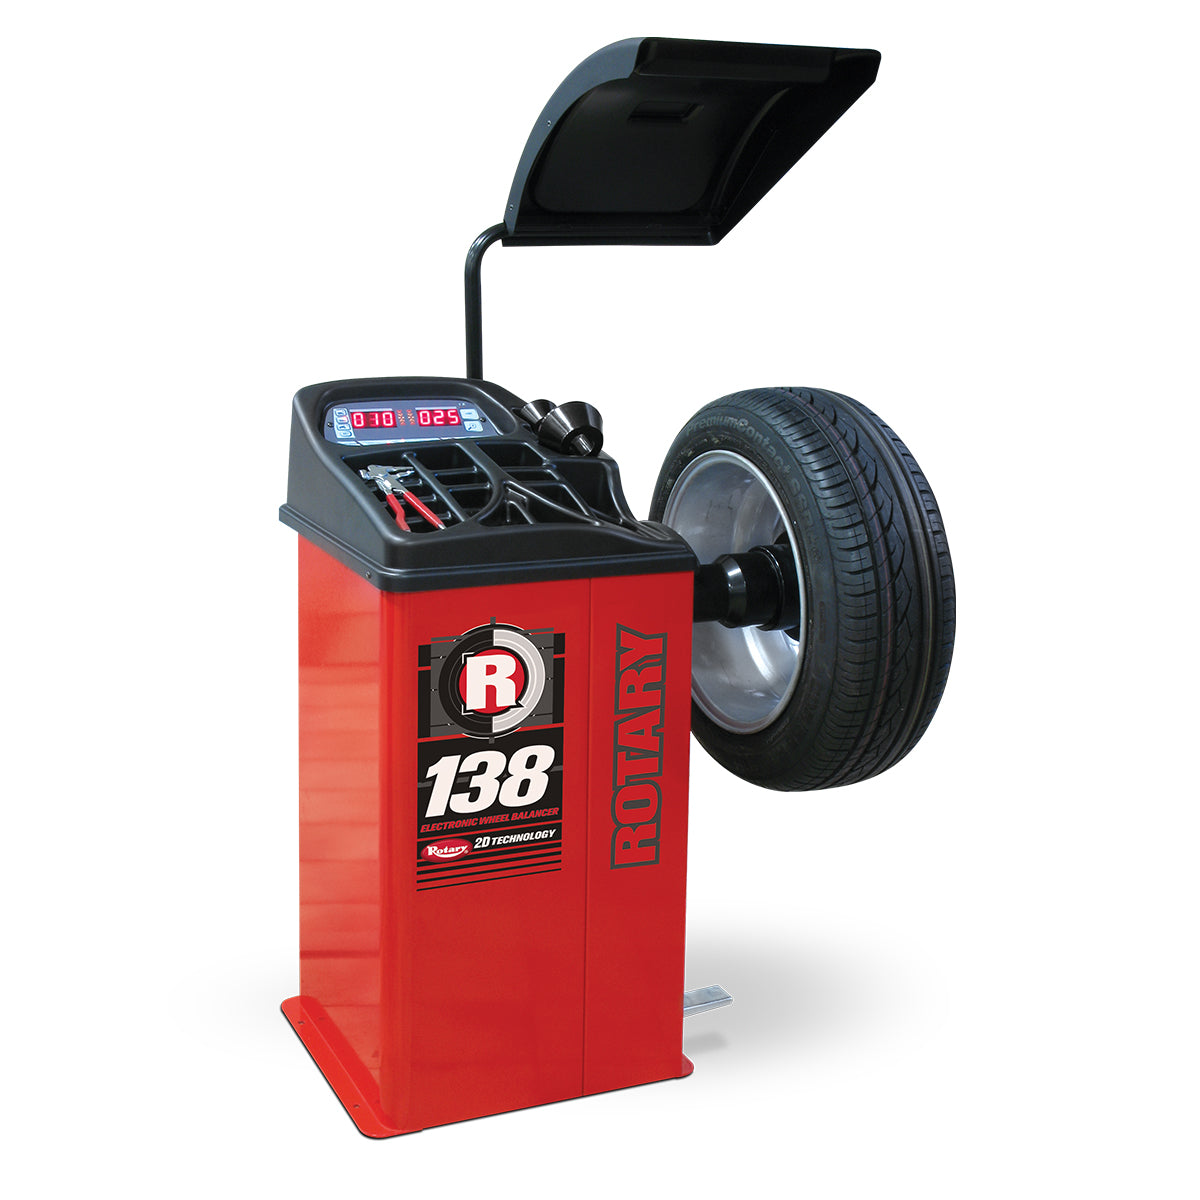 R138 Shop 2D Wheel Balancer